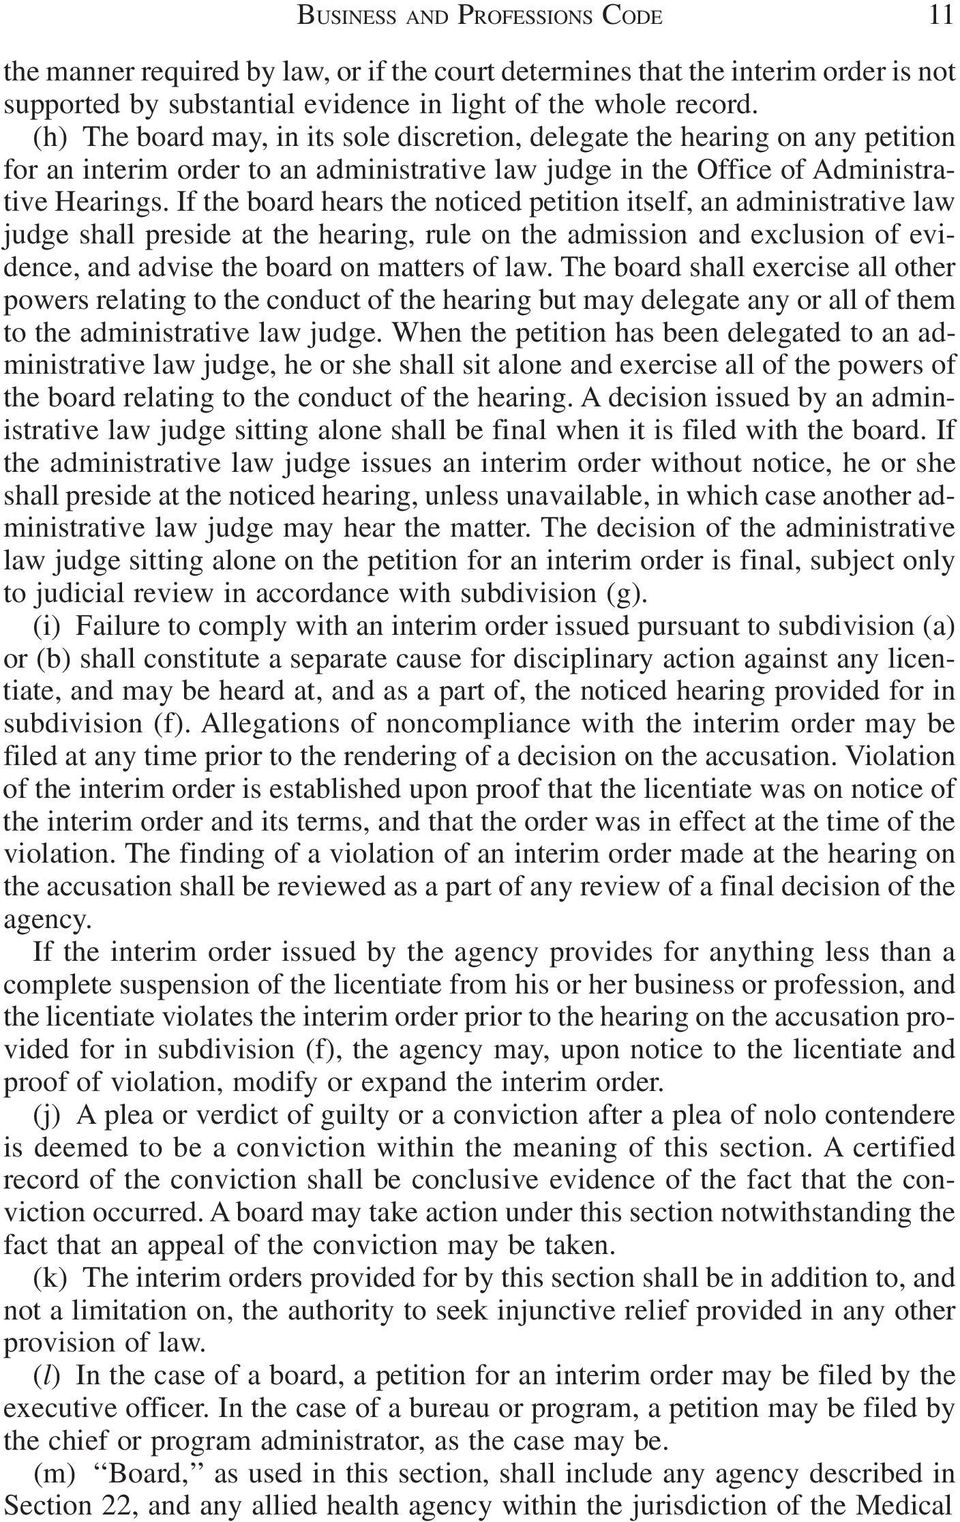 If the board hears the noticed petition itself, an administrative law judge shall preside at the hearing, rule on the admission and exclusion of evidence, and advise the board on matters of law.